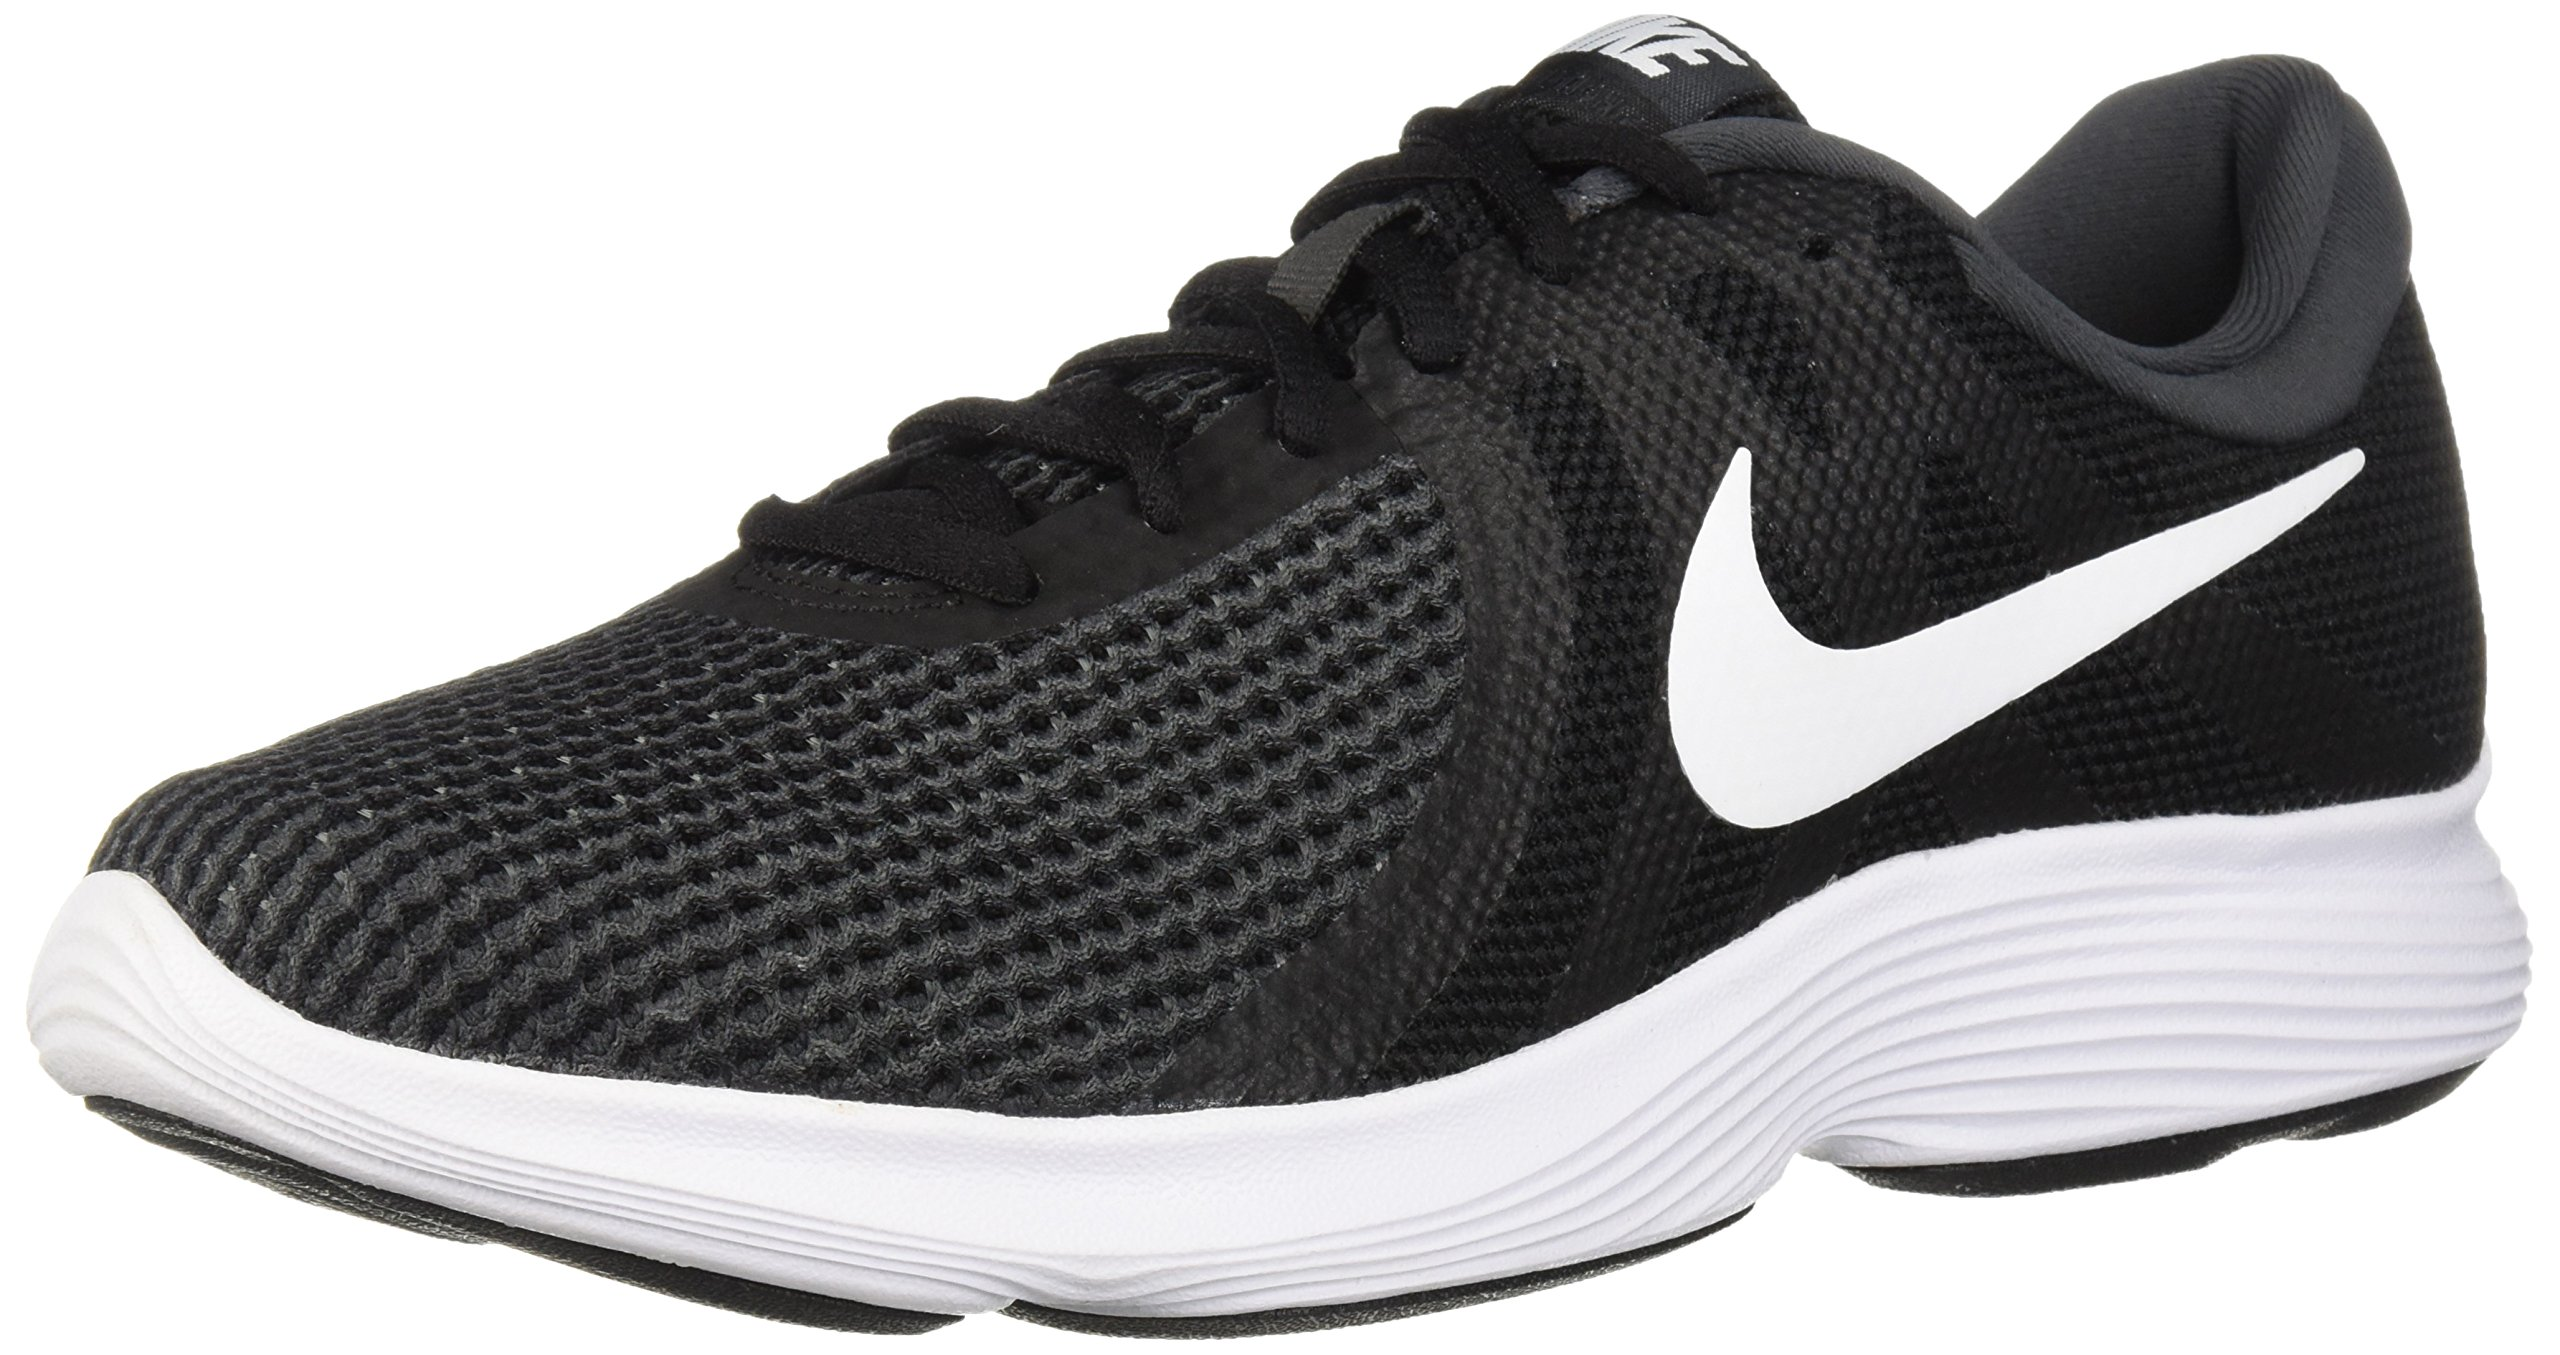 NIKE Men's Revolution 4 Running Shoe, Black/White-Anthracite, 10 Regular US by NIKE